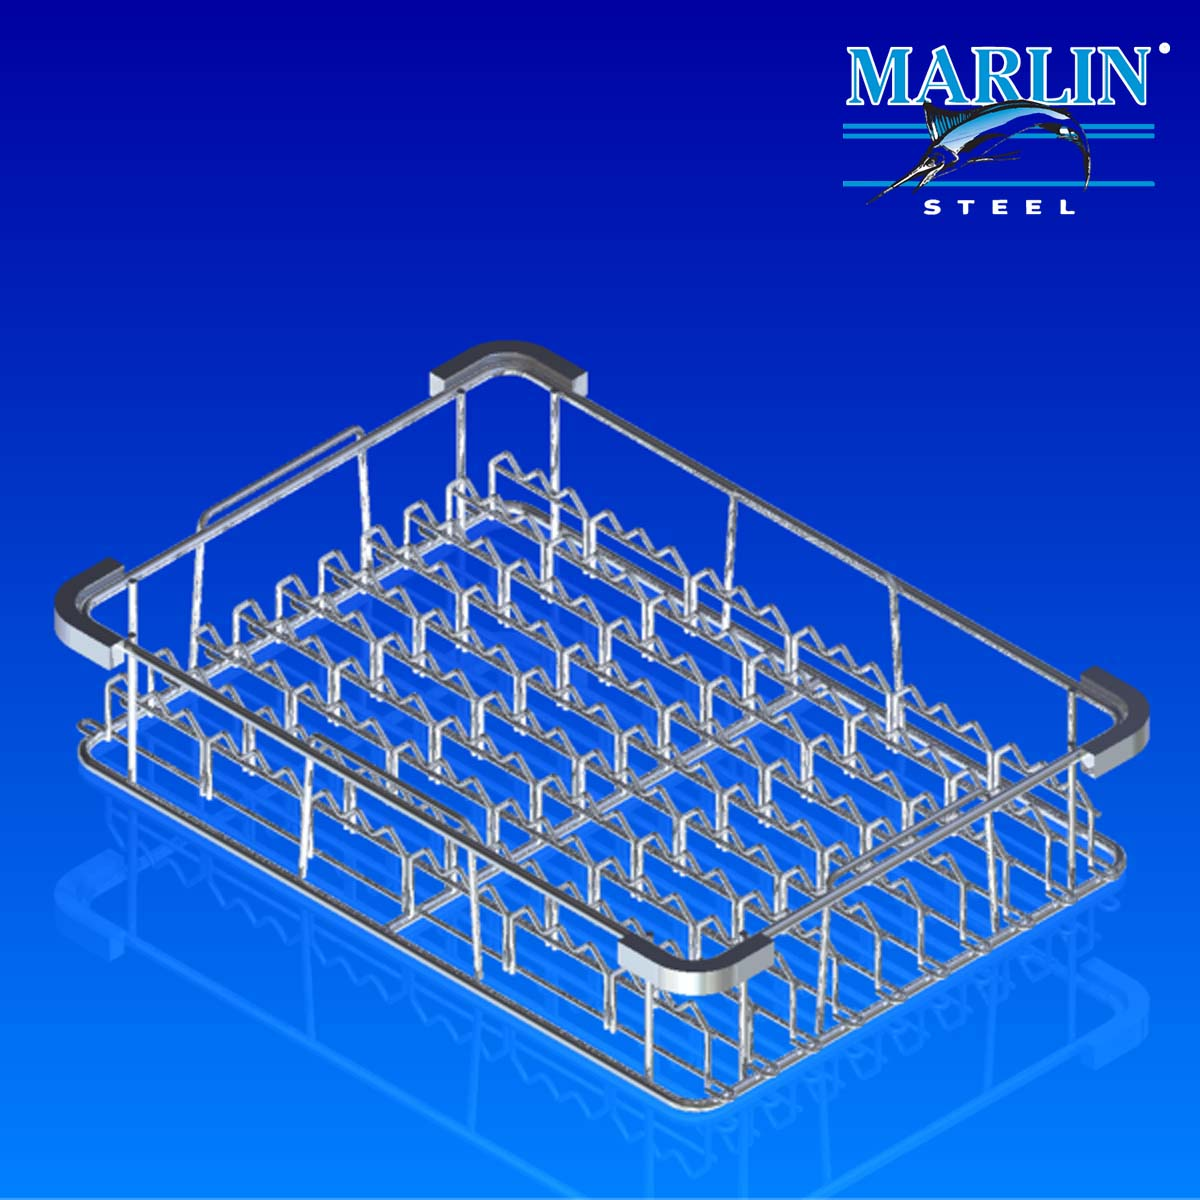 Marlin Steel Wire Basket 93001